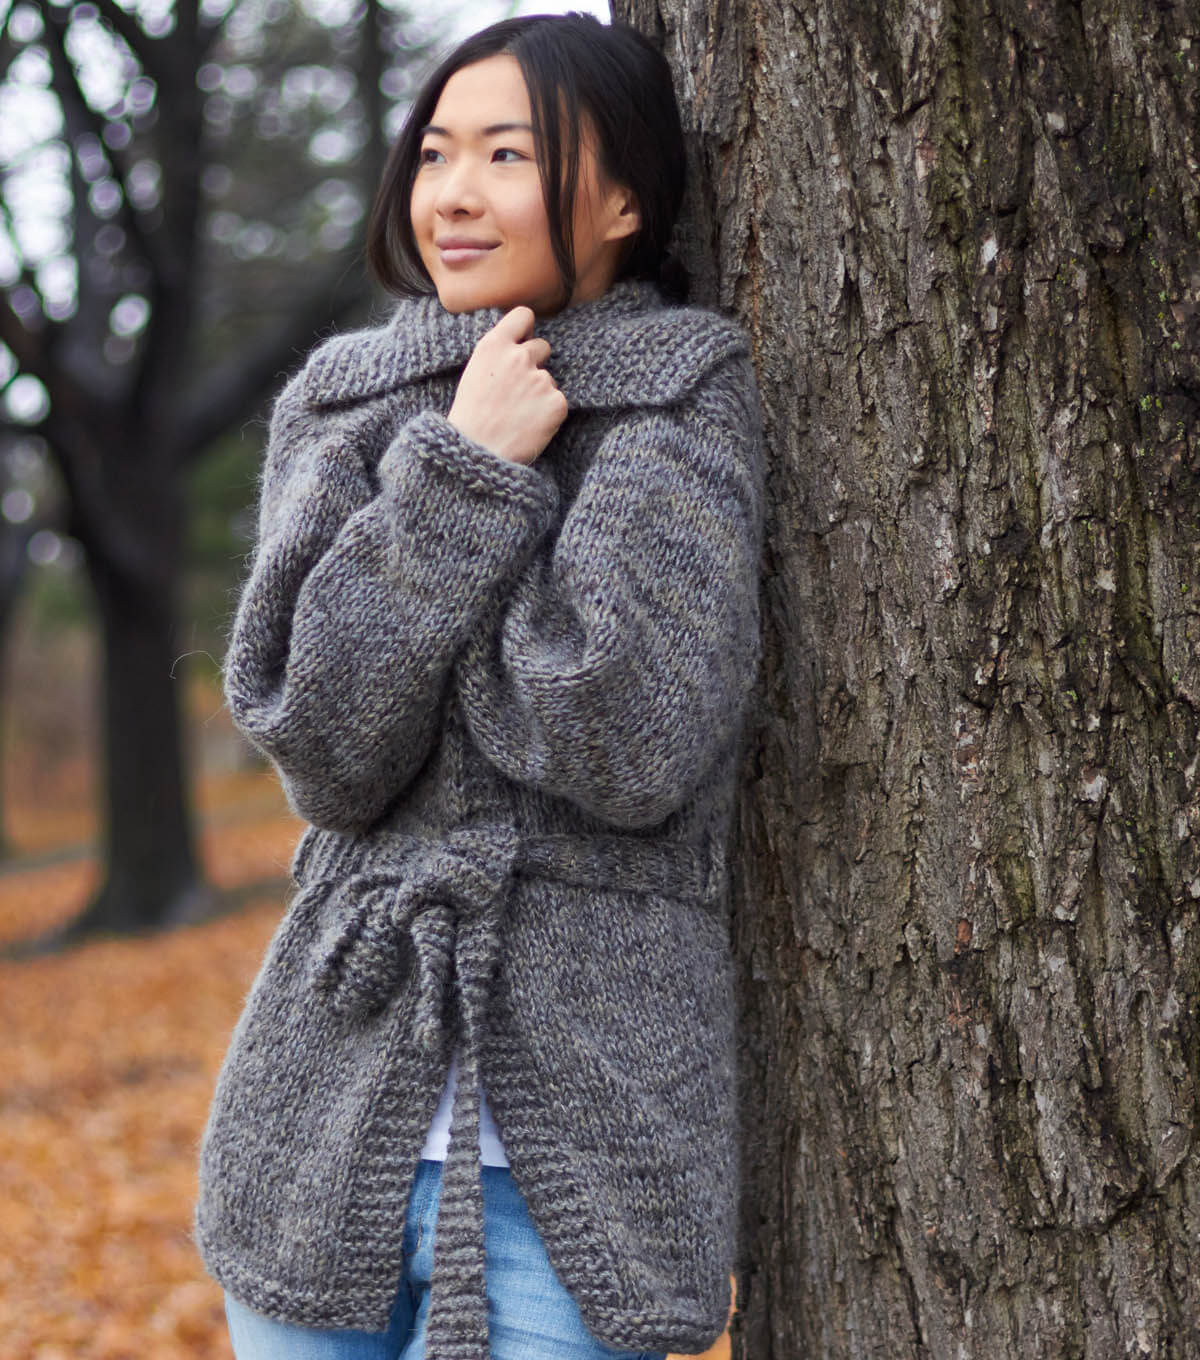 Free Japanese Knitting Patterns English : Knit this Easy Saturday Cardigan - Free Pattern! - The Spinners Husband